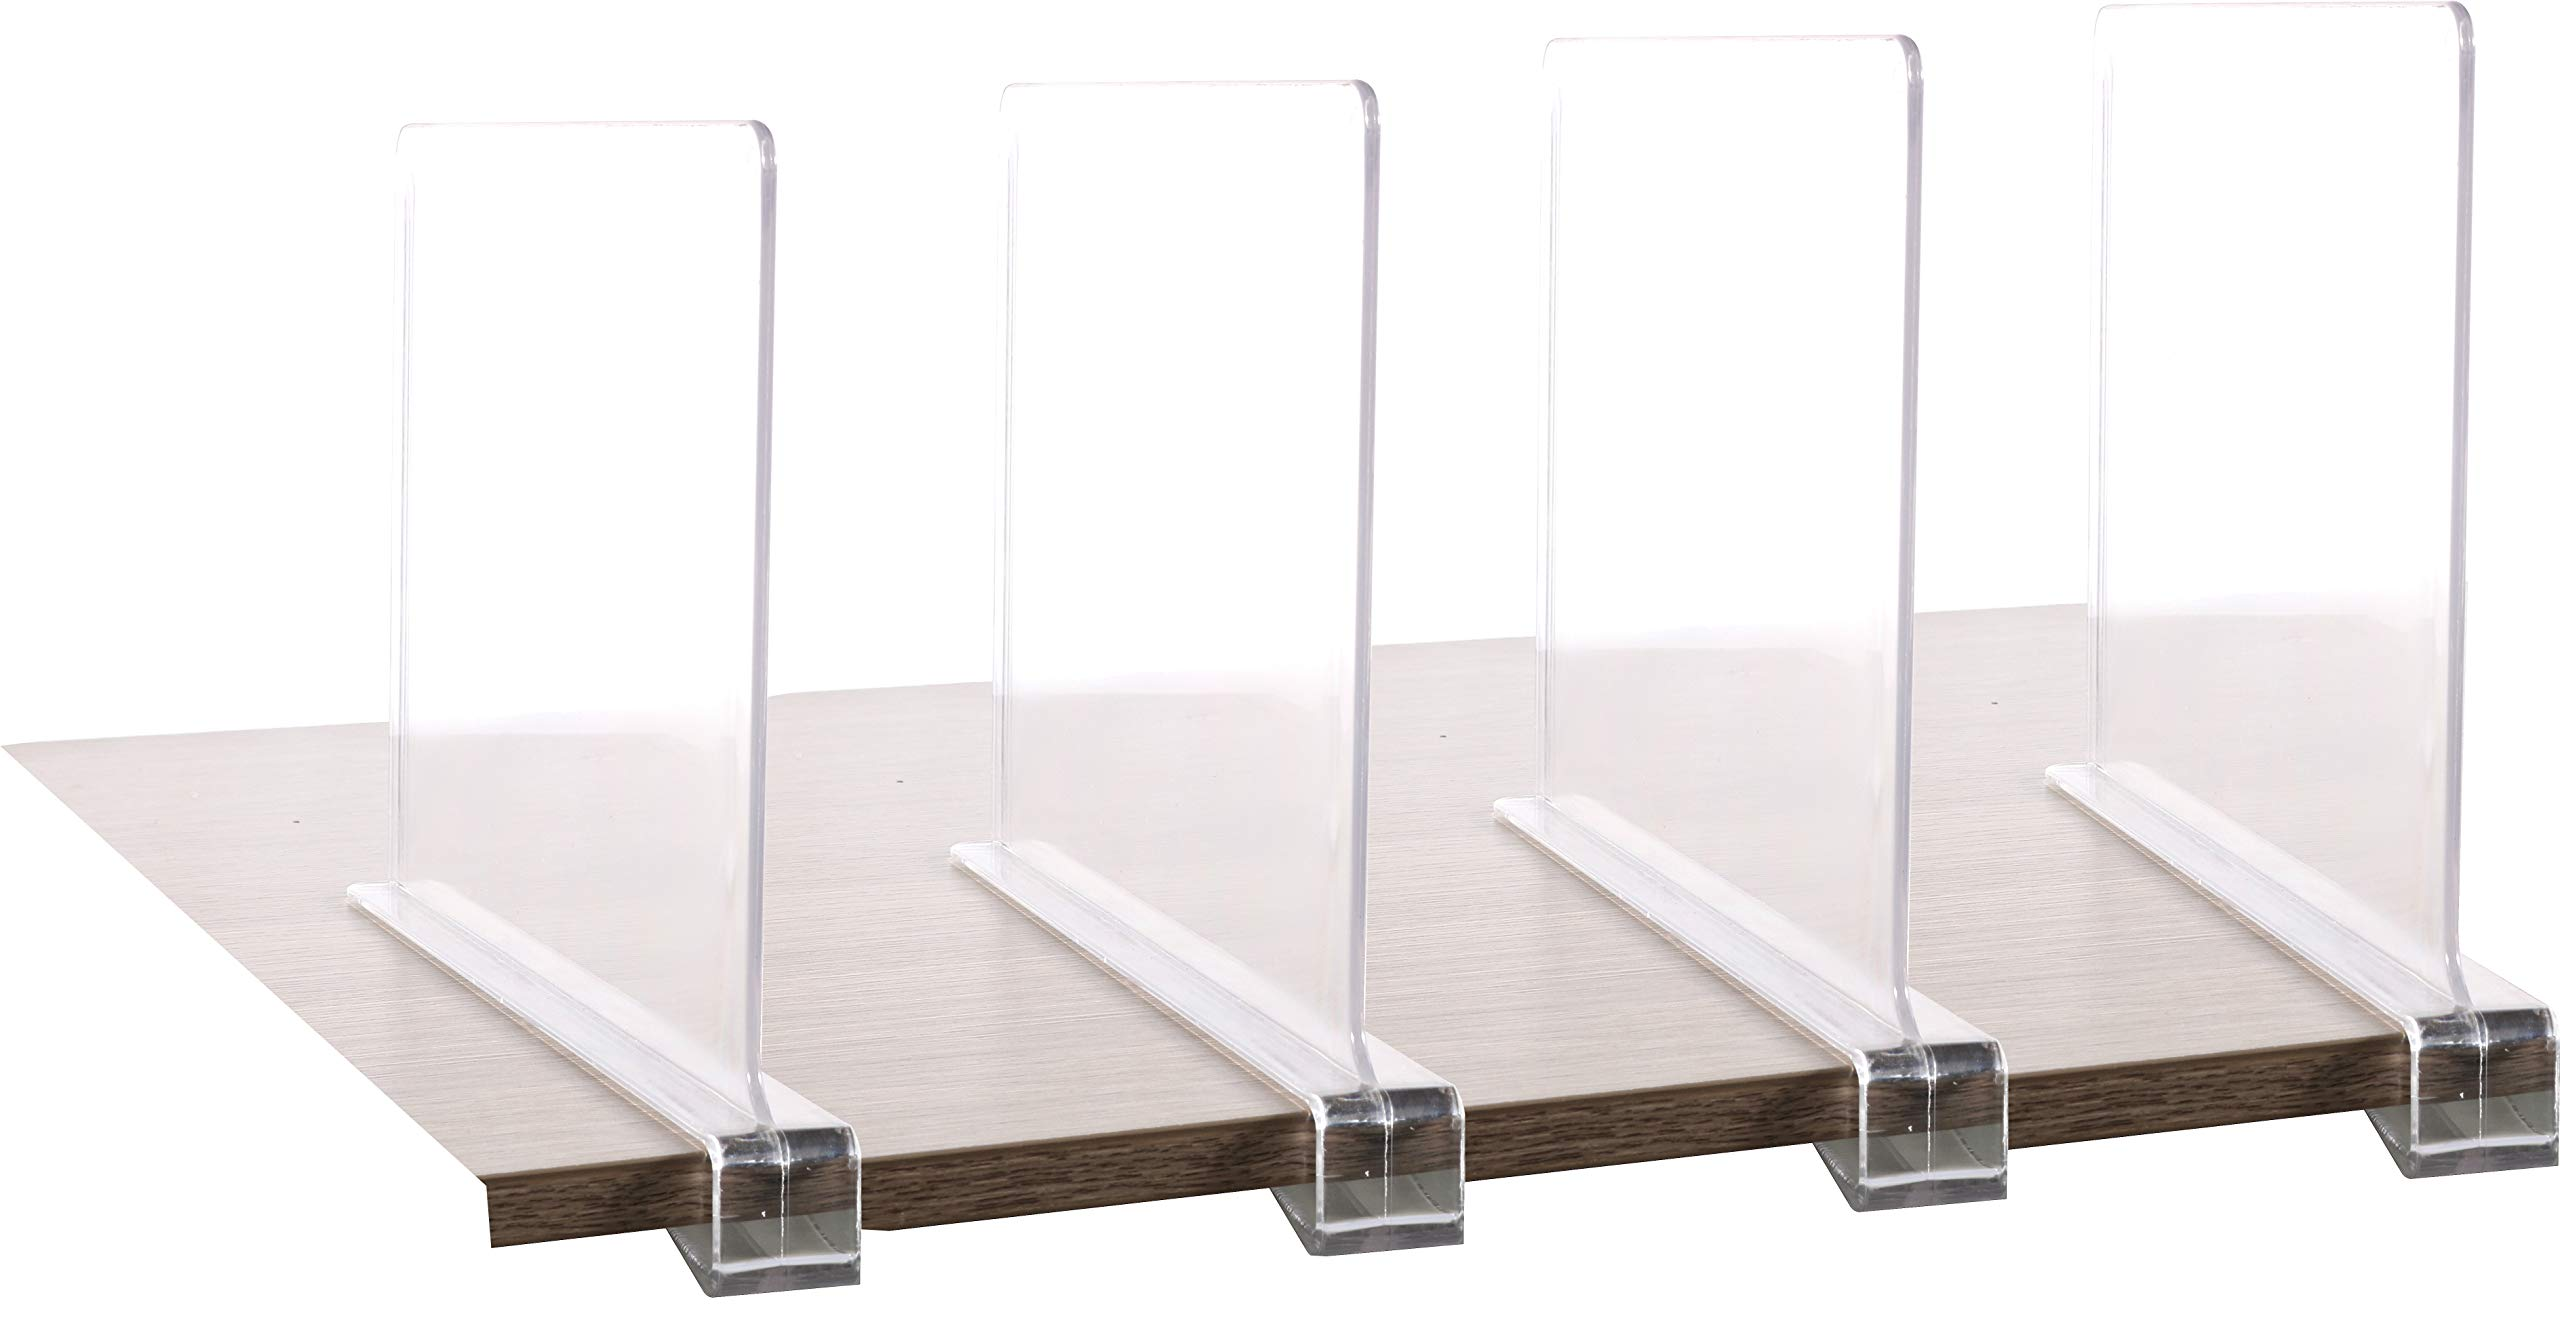 4PCS Multifunction Acrylic Shelf Dividers,Closets Shelf and Closet Separator for Wood Closet,Only Need to Slide to Adjust The Appropriate Distance by Cq acrylic